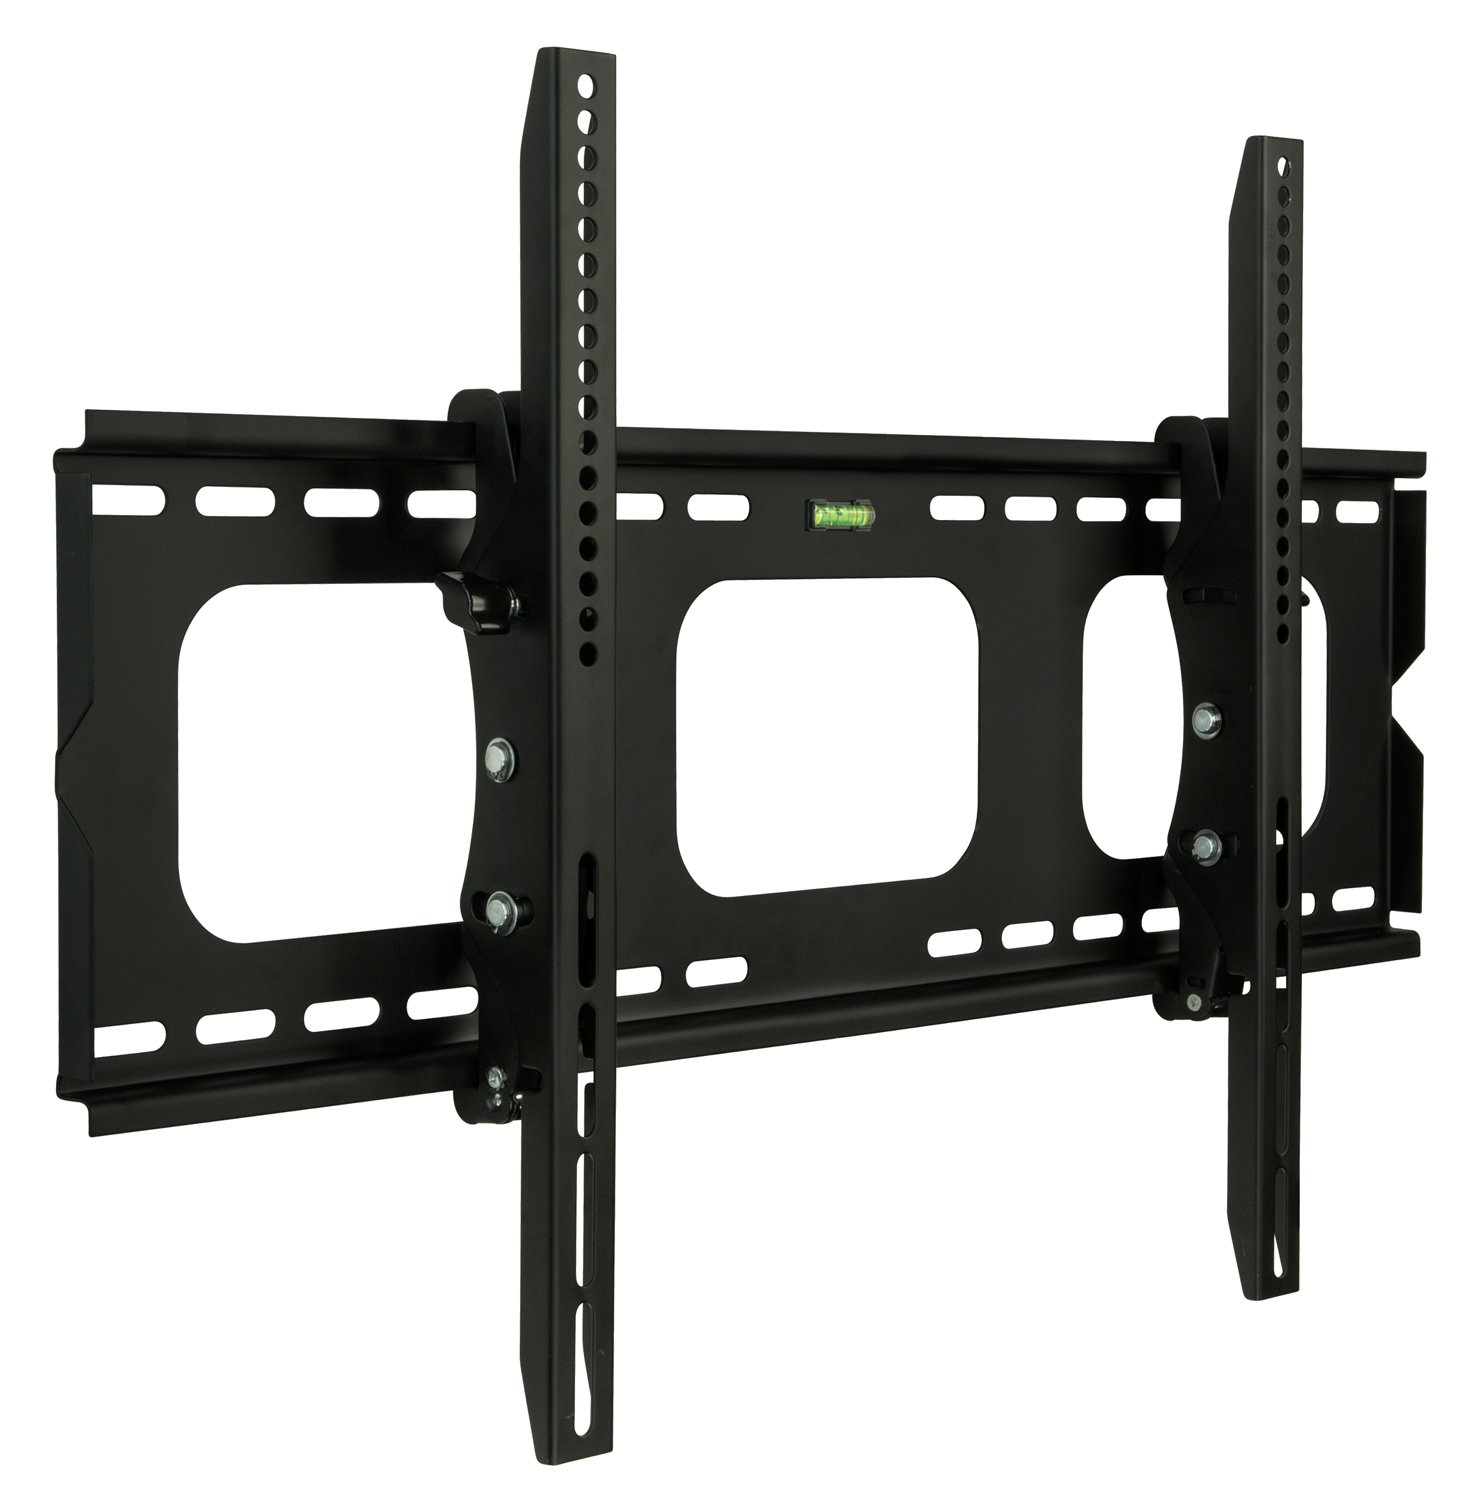 Amazon.com: Mount-It! MI-303-CBL Tilt TV Wall Mount Bracket for LCD, LED,  or Plasma Flat Screens, 32  60 Screen Sizes, HDMI Cable Included, ...